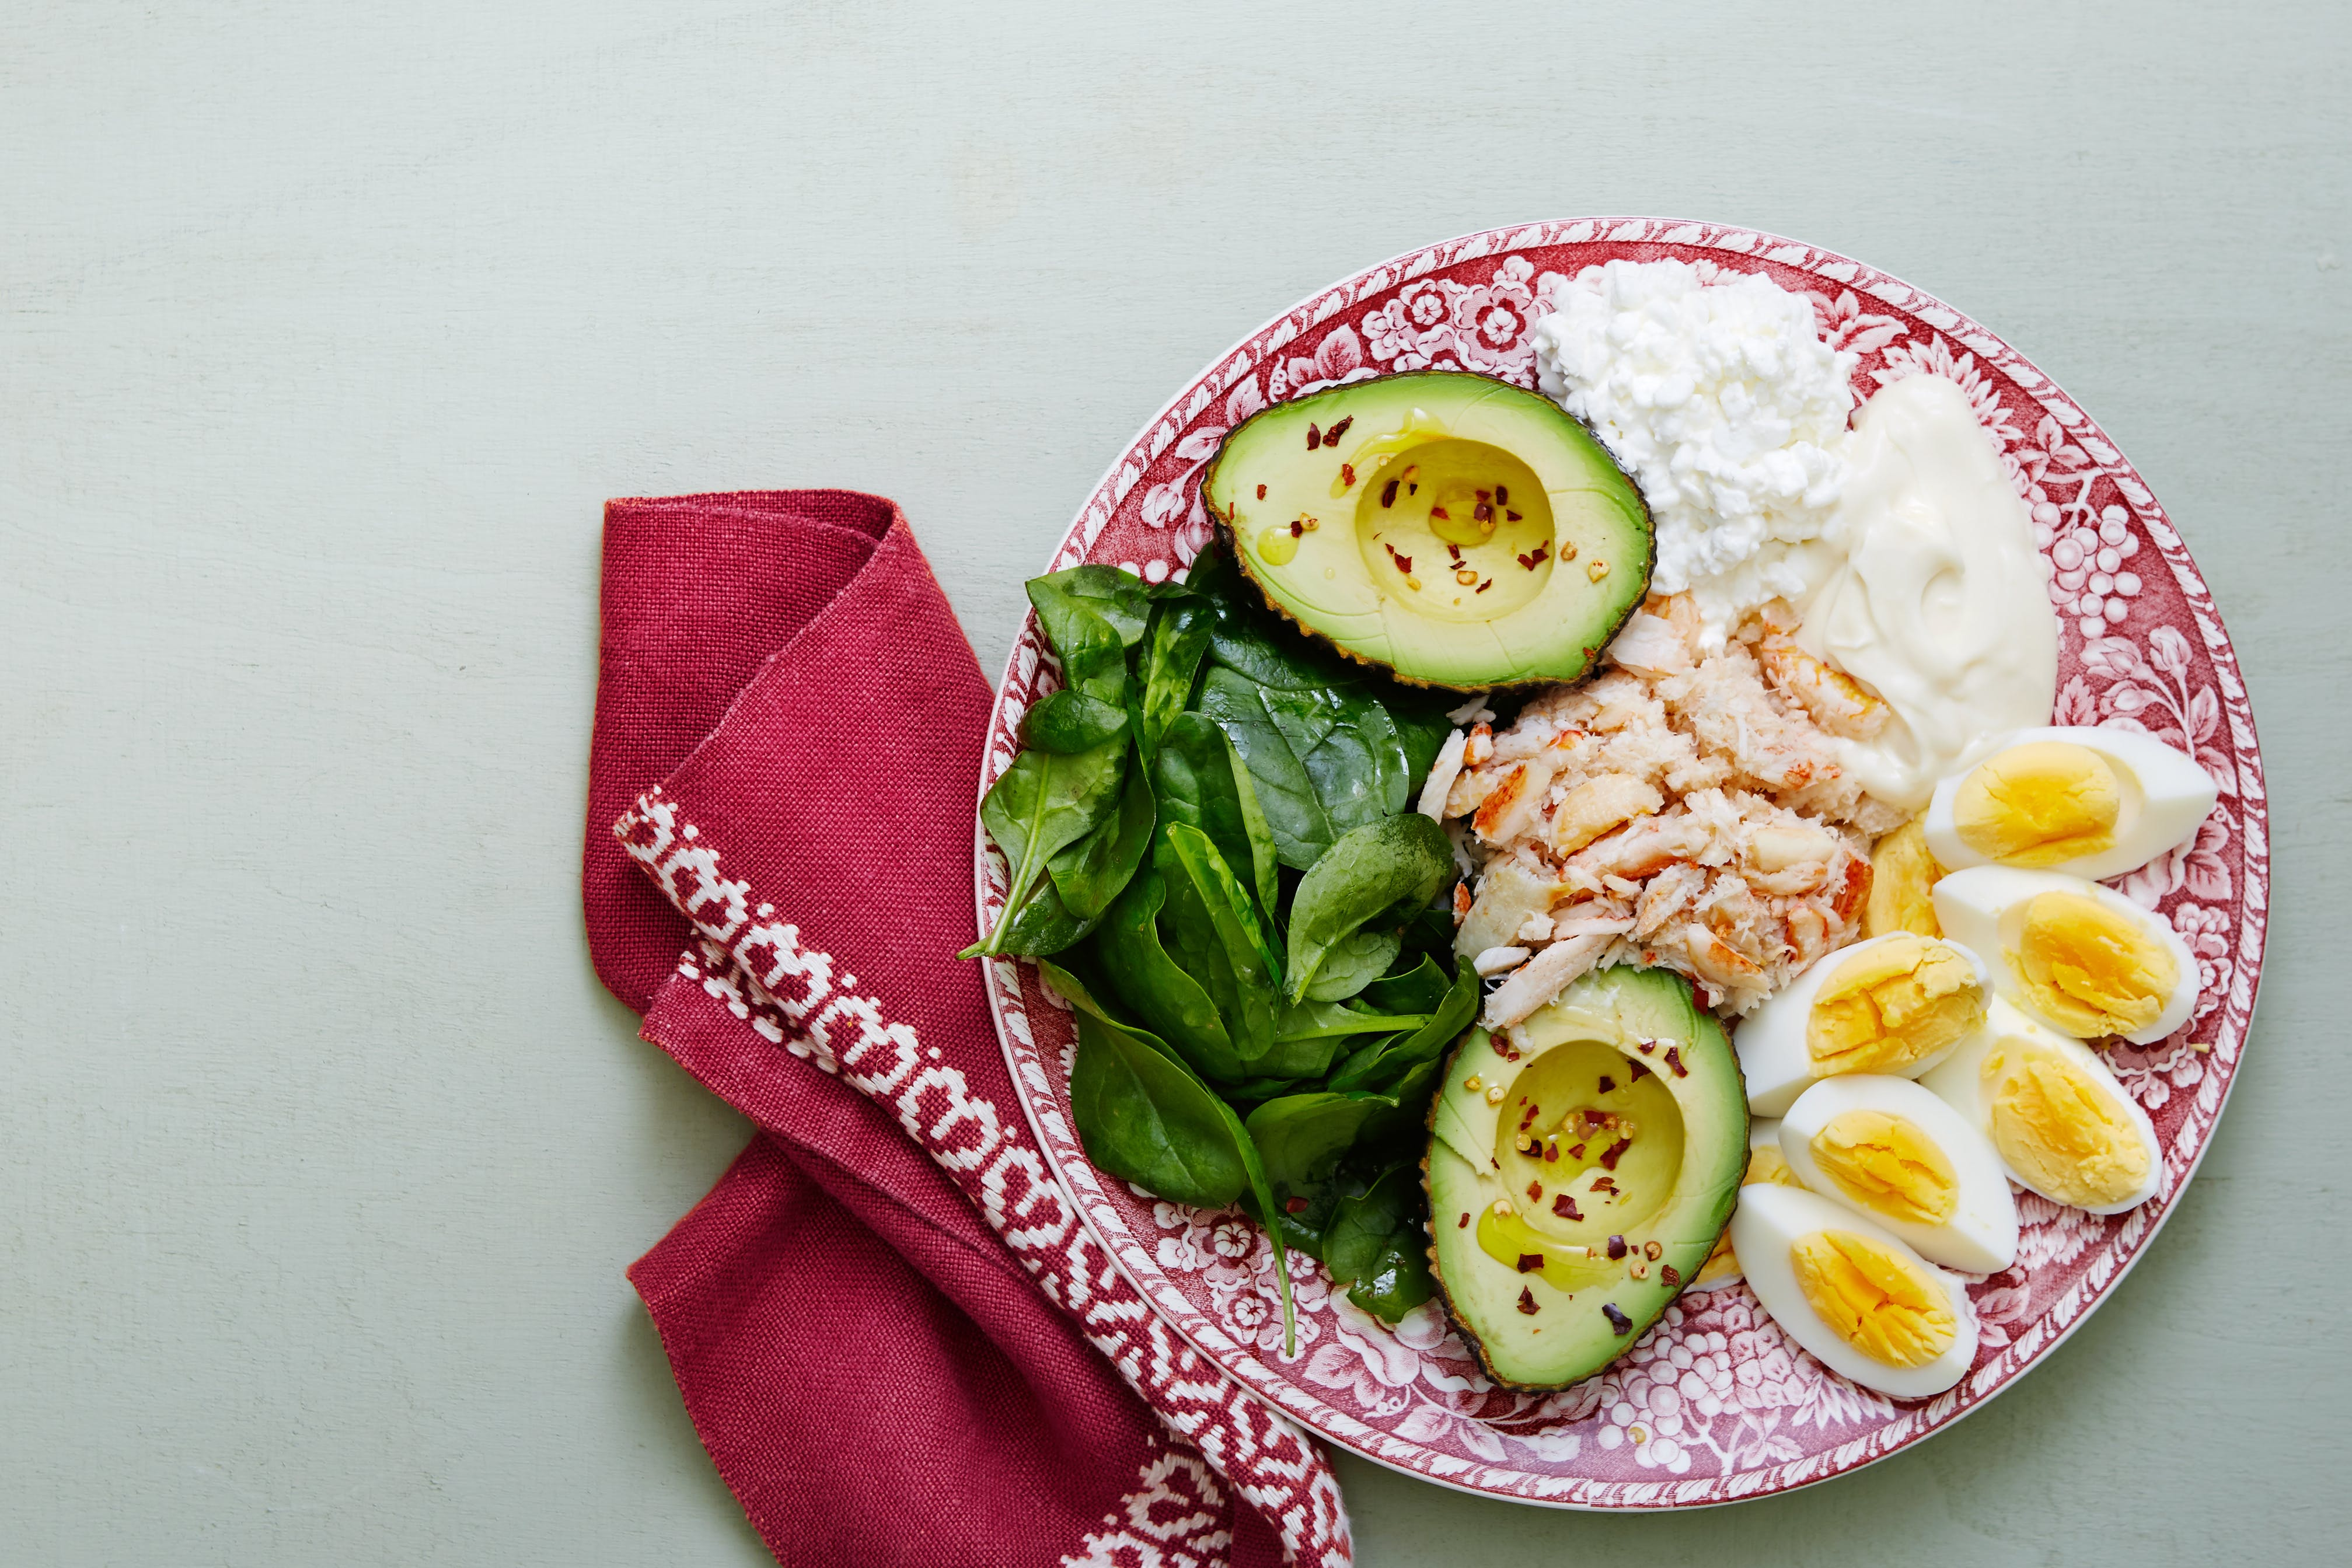 Keto crab meat and egg plate